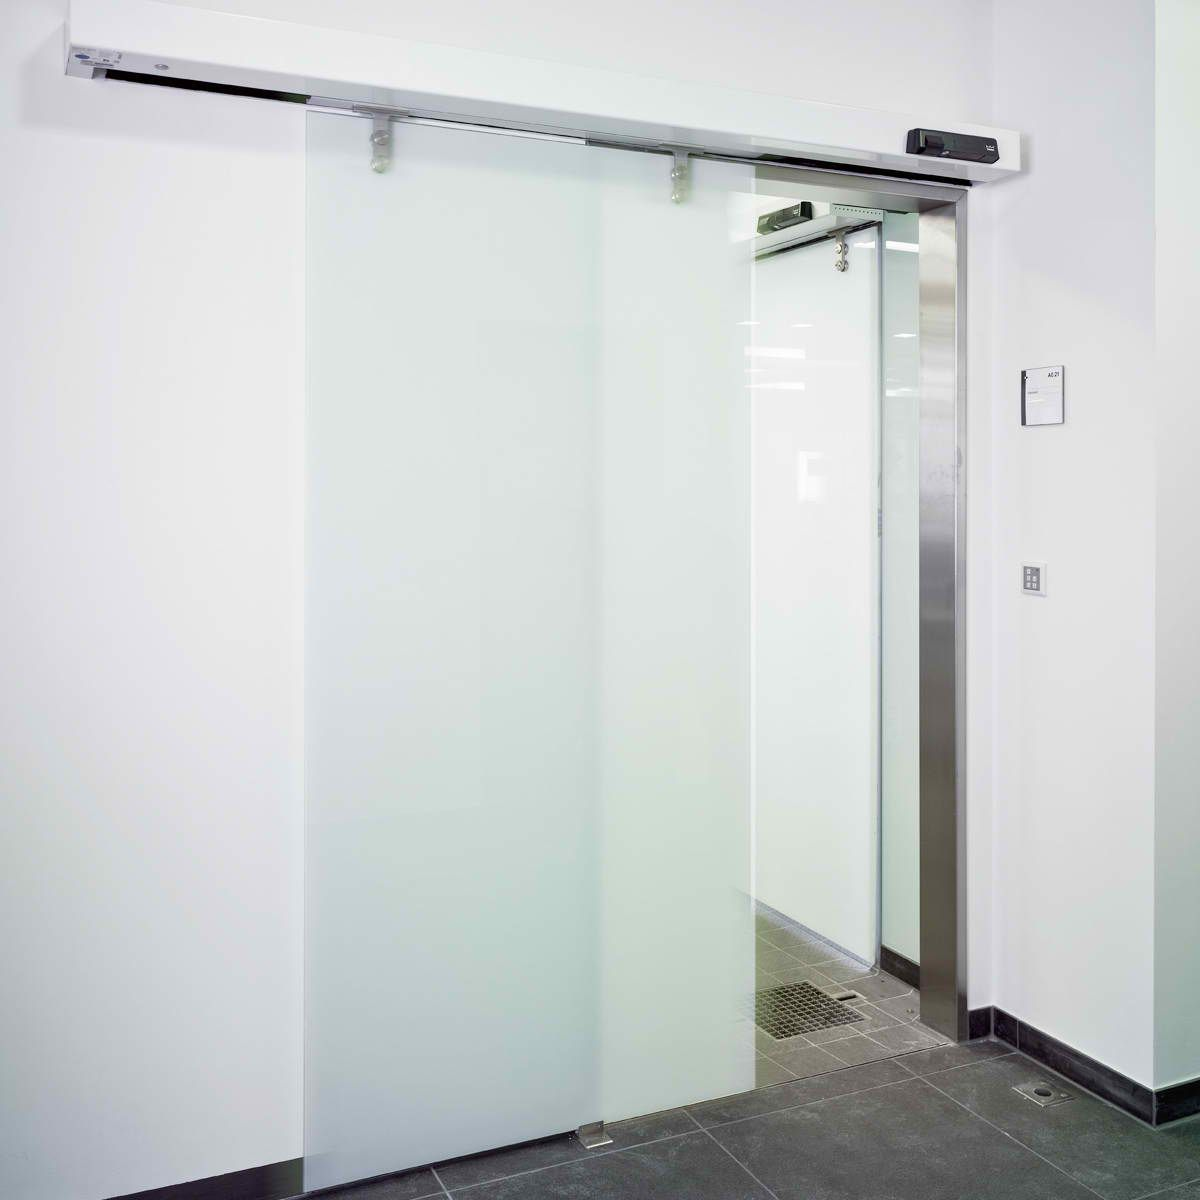 Dorma st manet automatic sliding door for Motorized sliding glass door